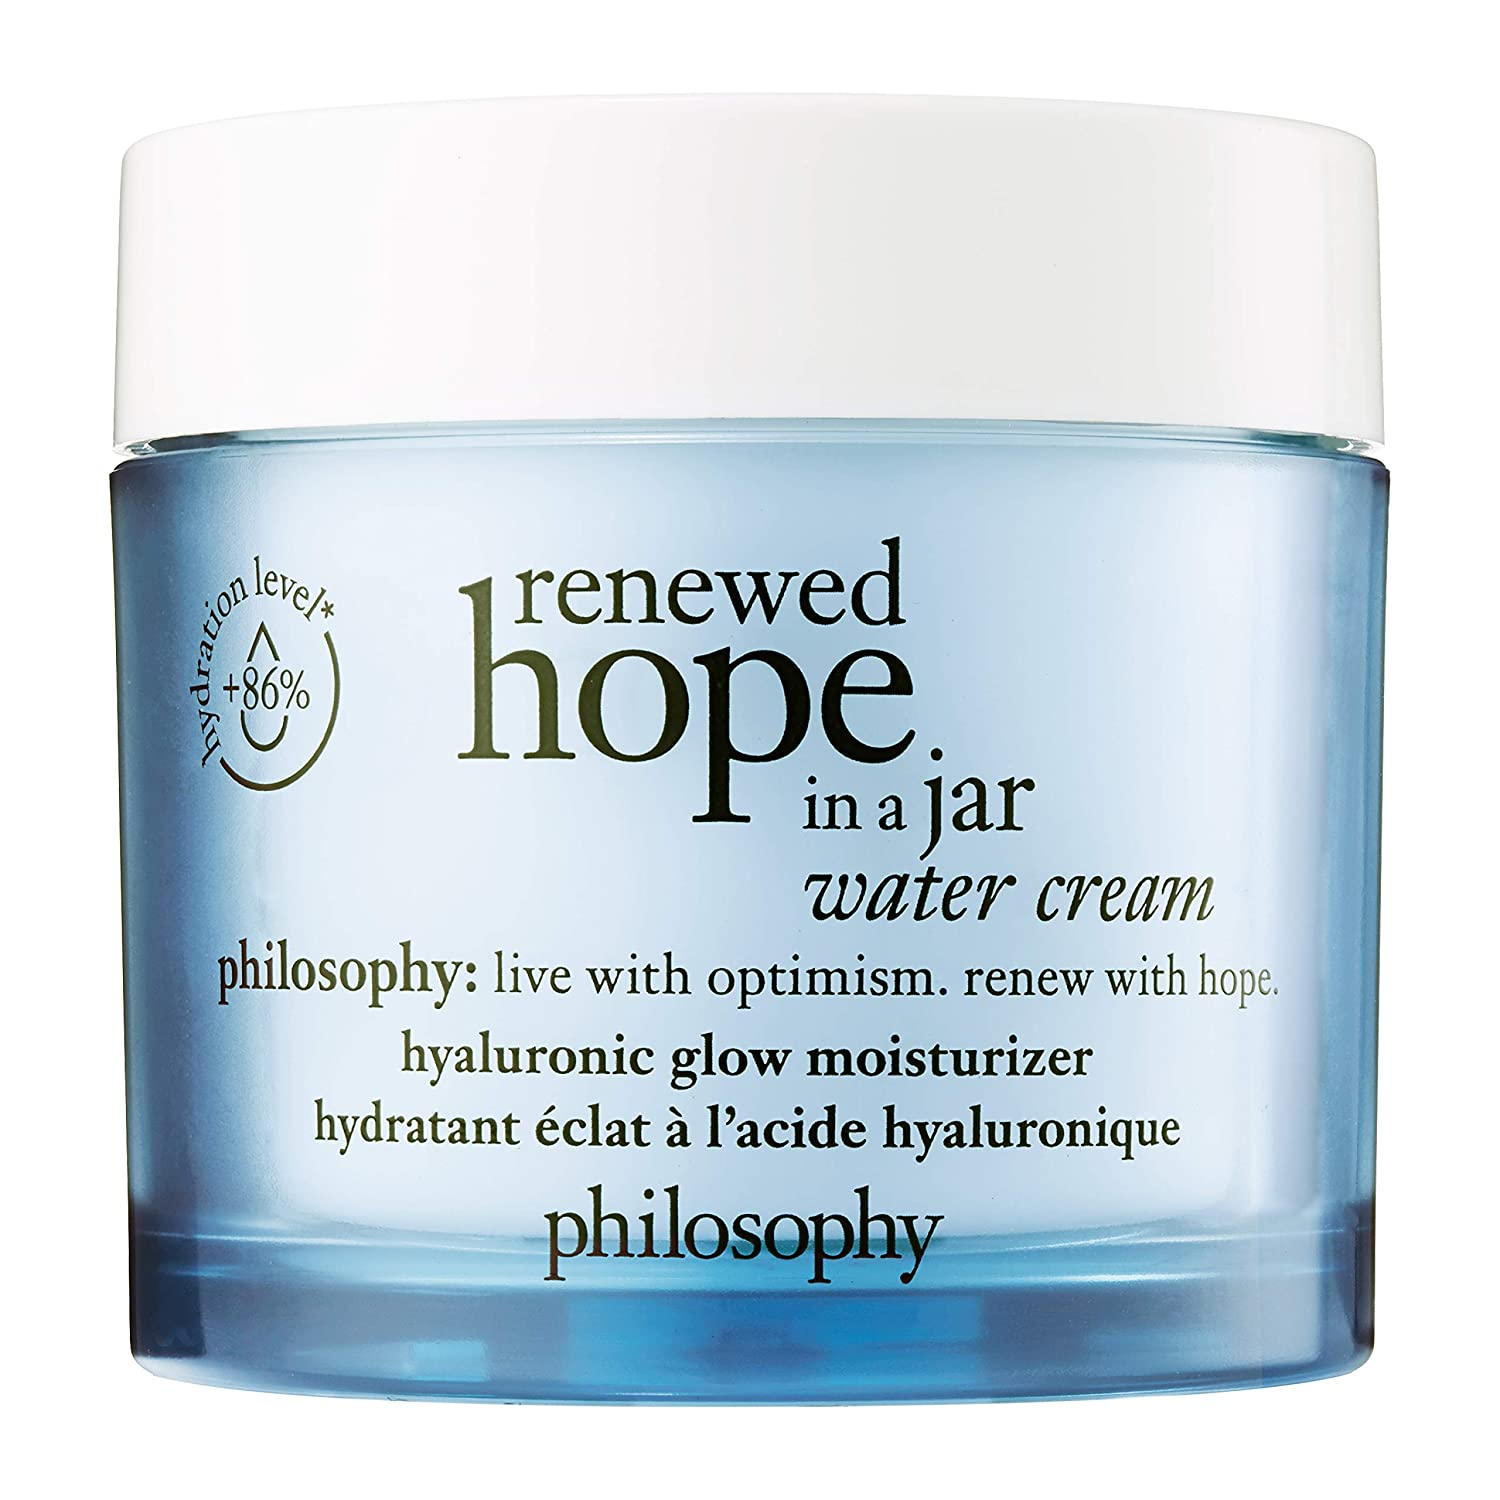 Amazon.com: philosophy renewed hope in a jar - water cream, 2 oz: Premium Beauty